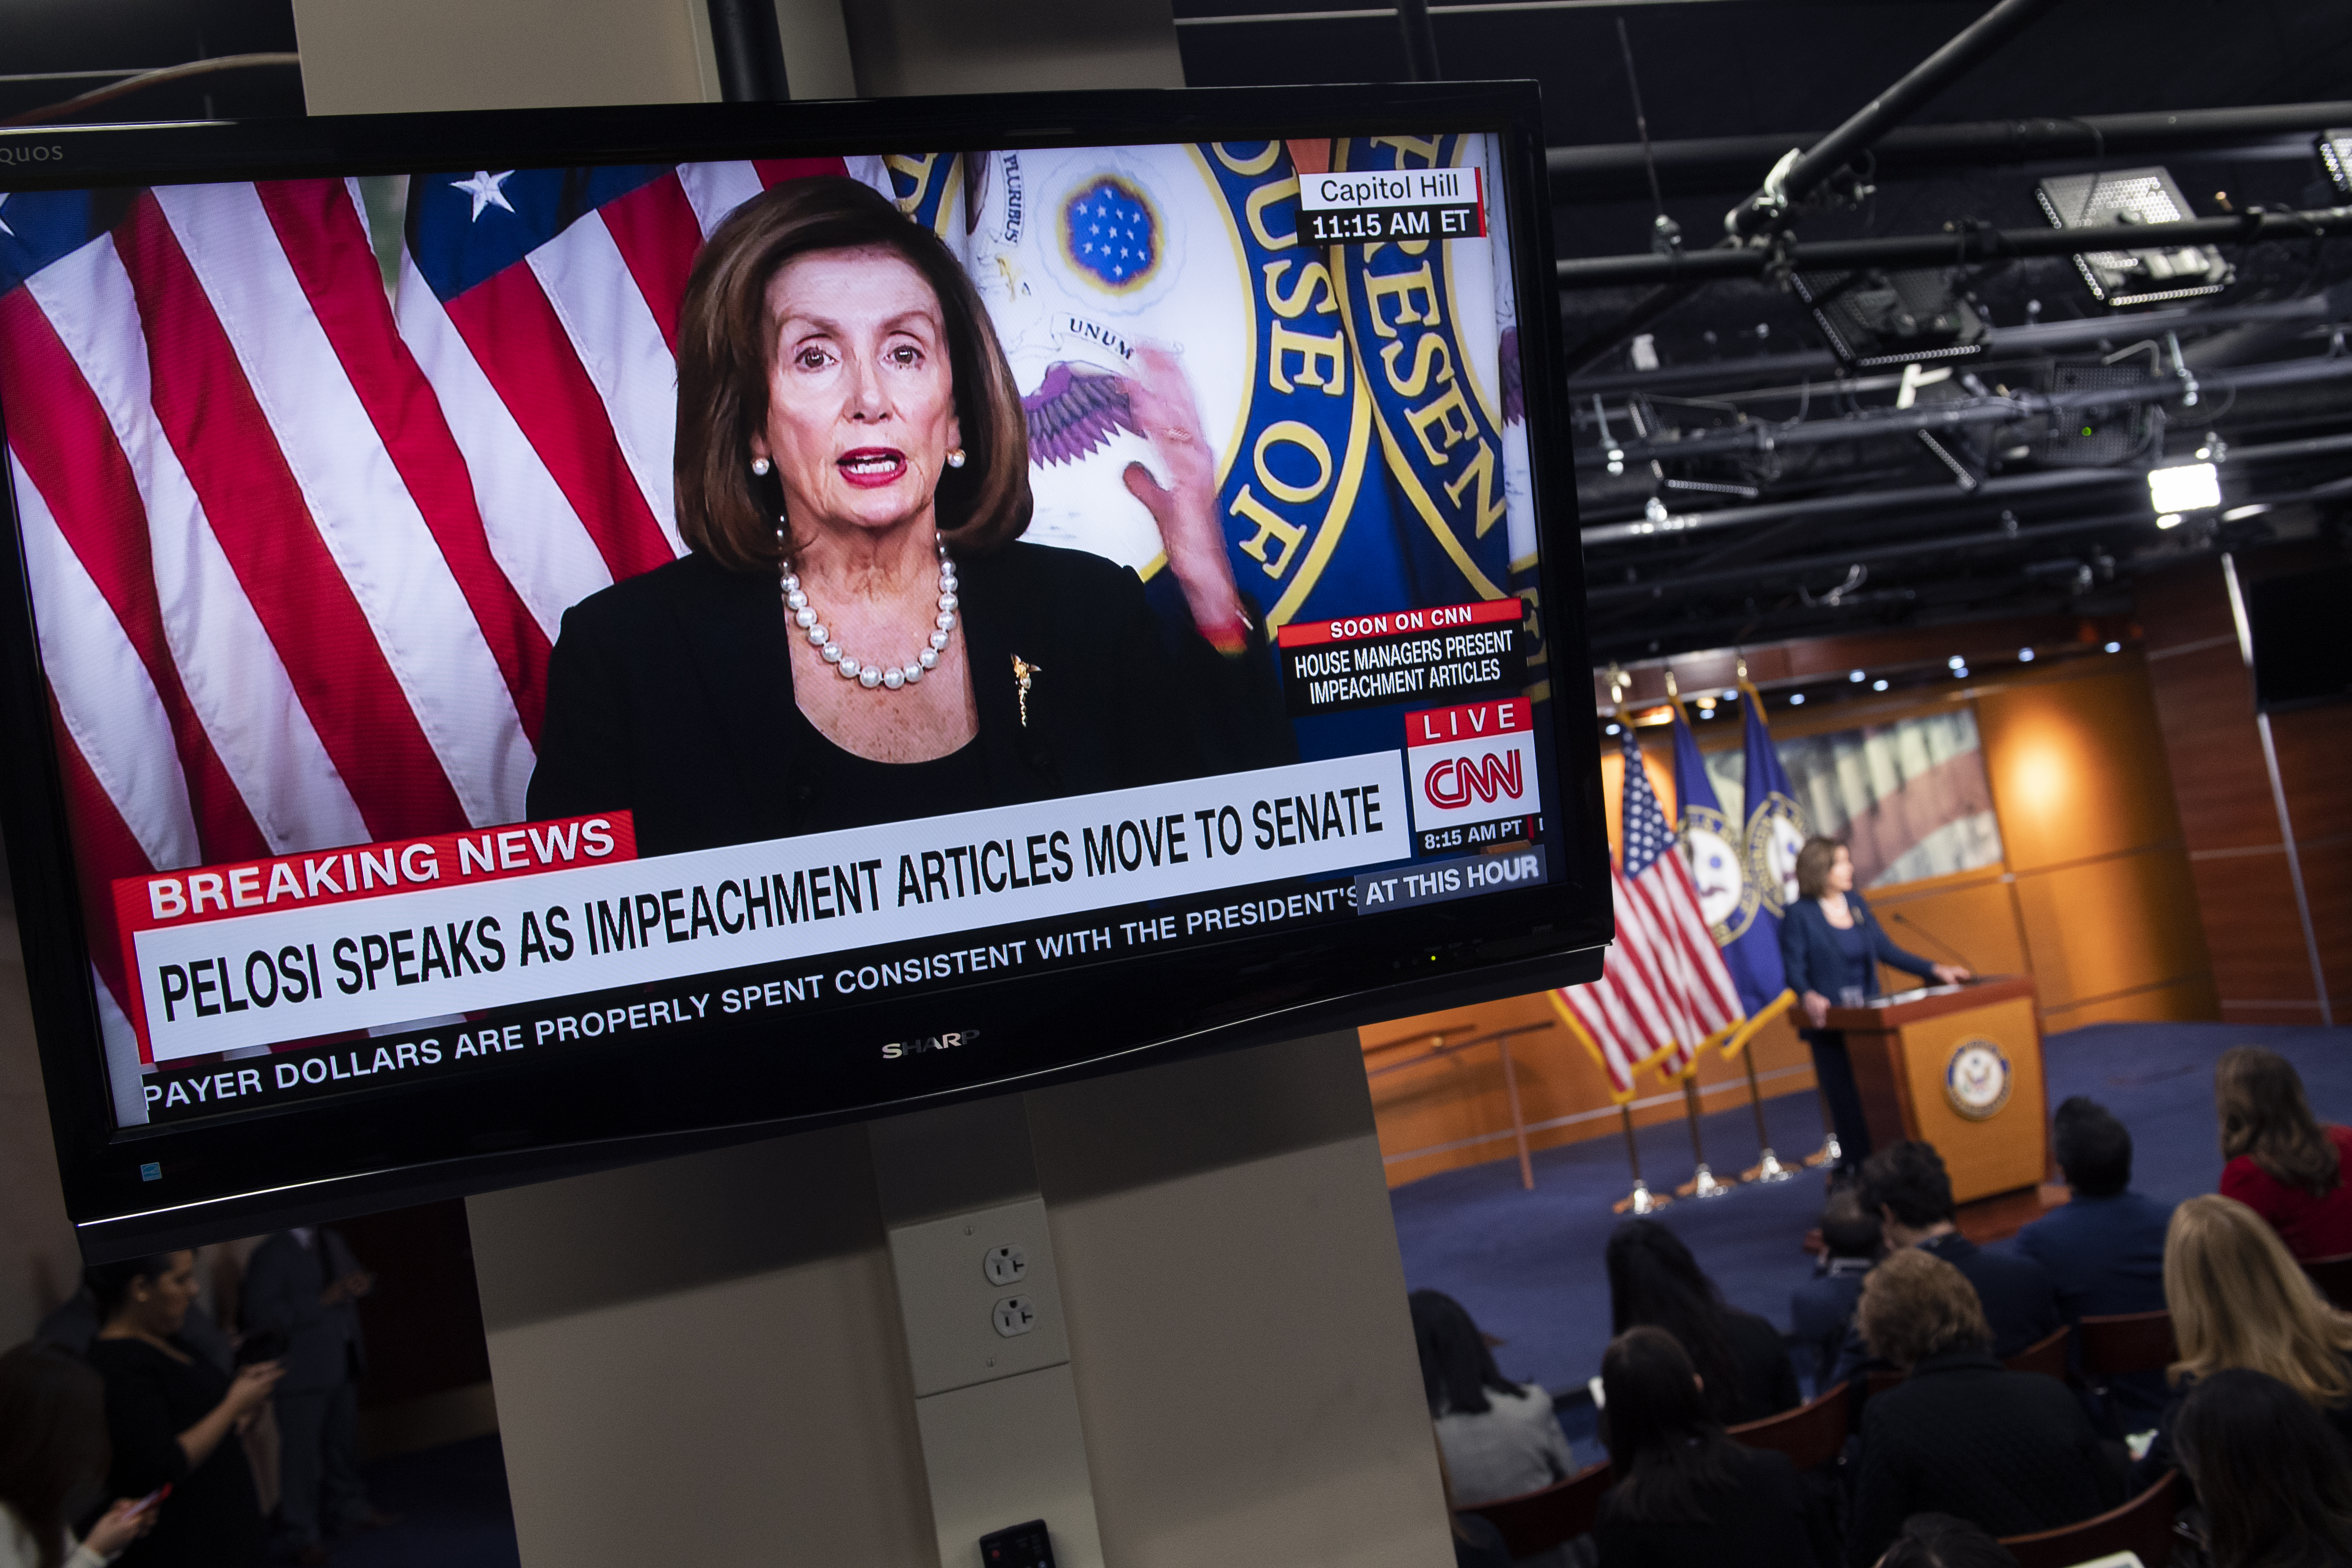 UNITED STATES - JANUARY 16: Speaker of the House Nancy Pelosi, D-Calif., conducts her weekly news conference in the Capitol Visitor Center on Thursday, January 16, 2020. (Photo By Tom Williams/CQ Roll Call)